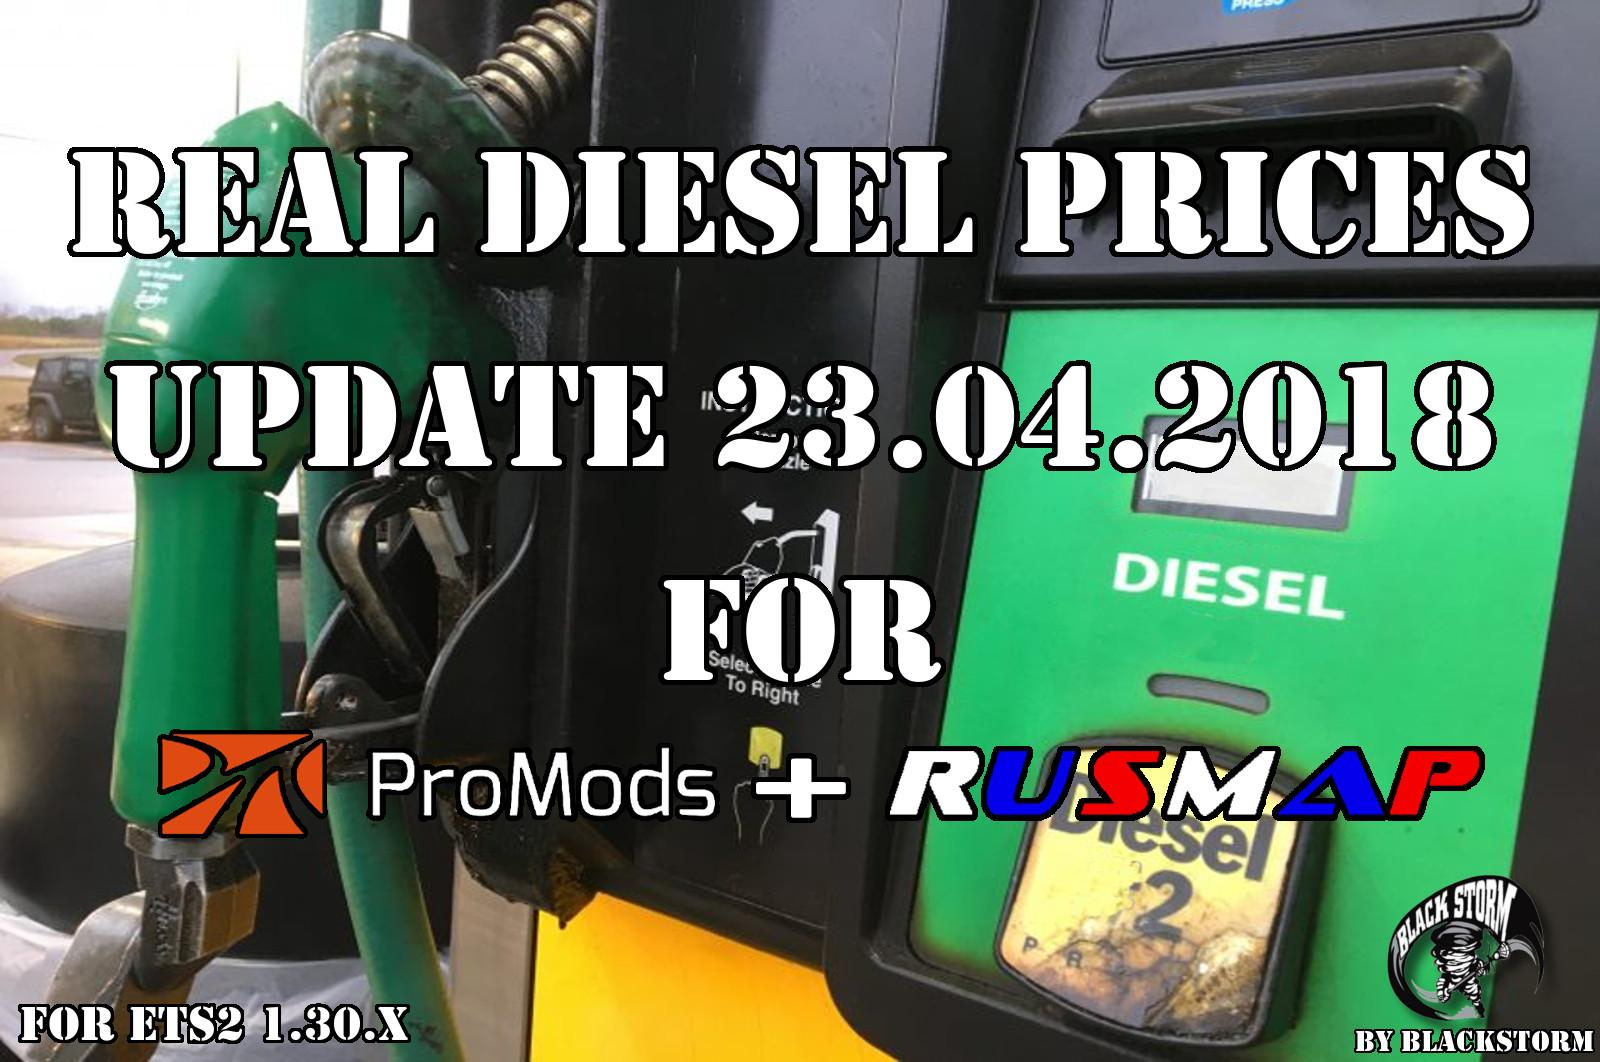 REAL DIESEL PRICES PROMODS V2.26 & RUSMAP V1.8 (UPDATED 23/04/2018)